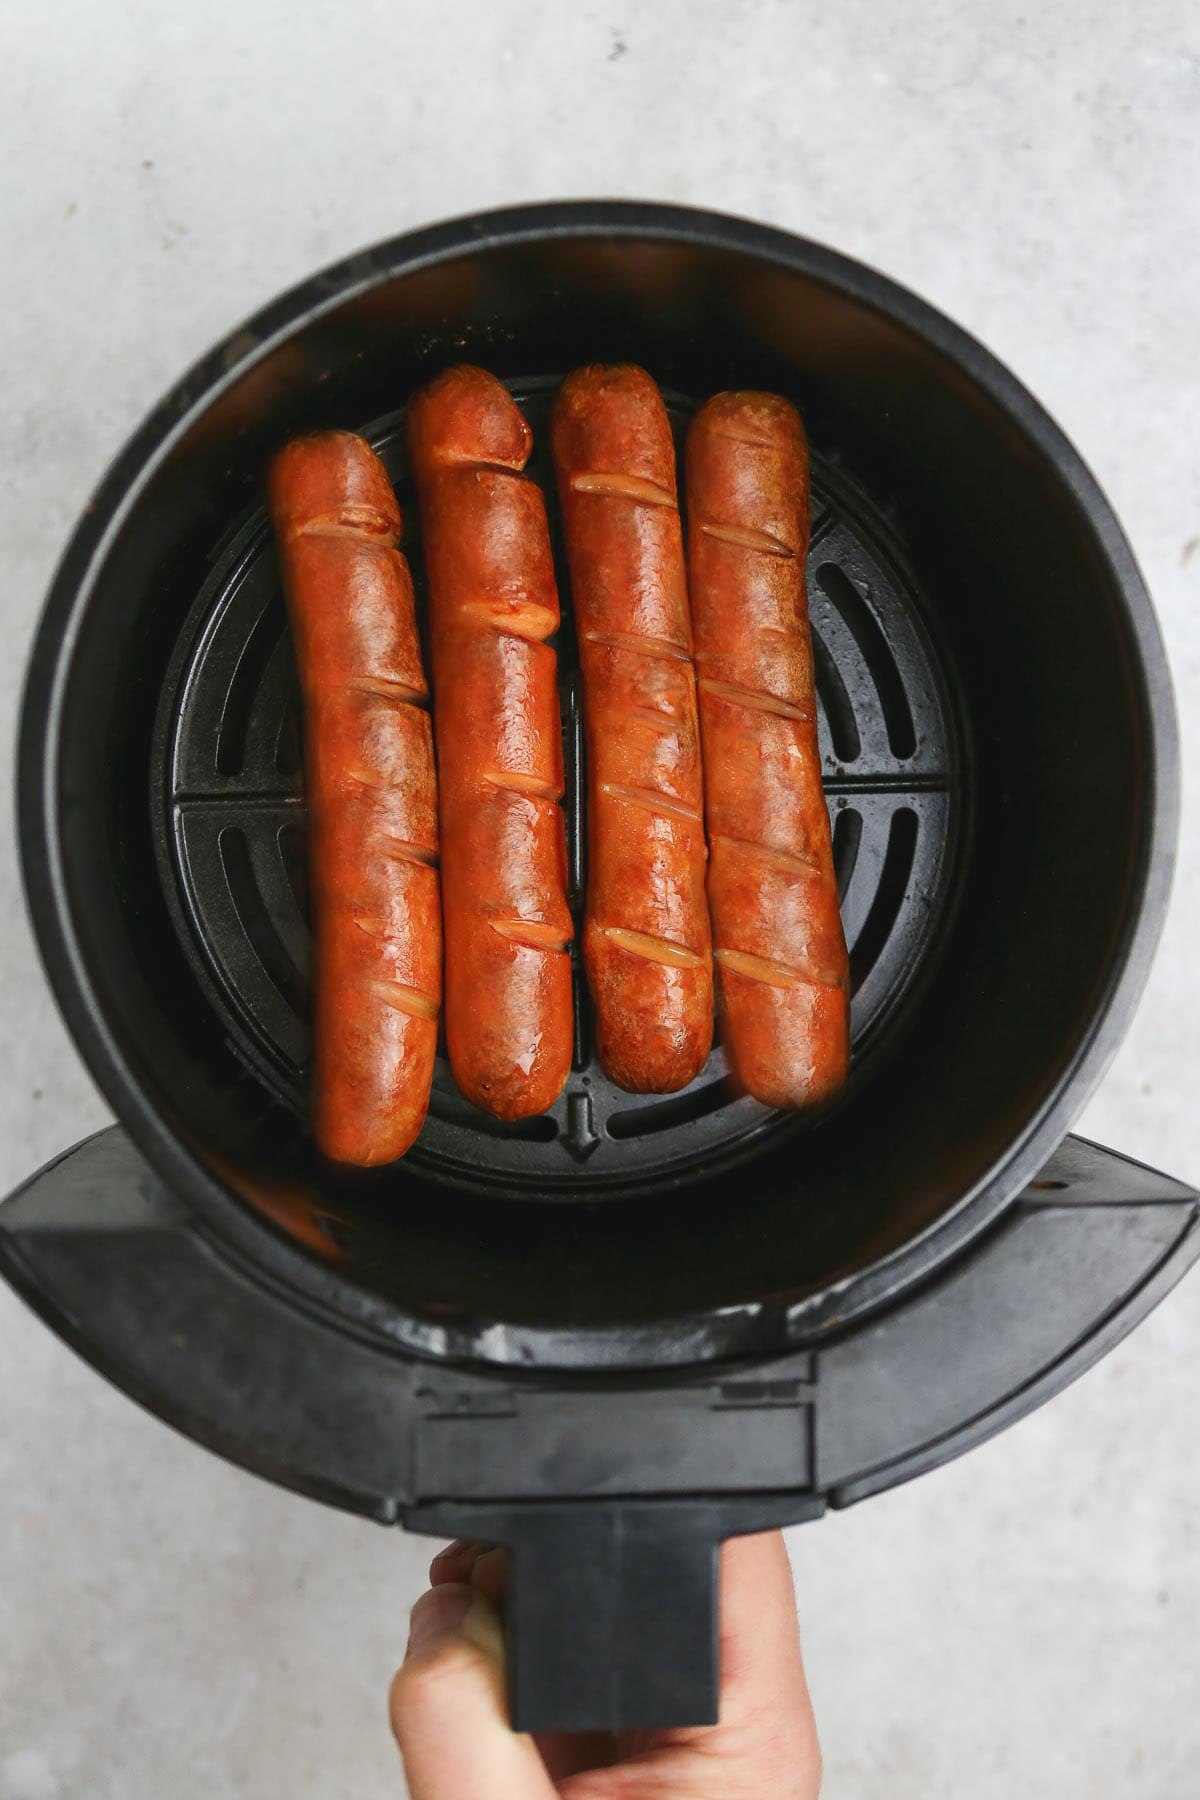 Cooked air fryer hot dogs